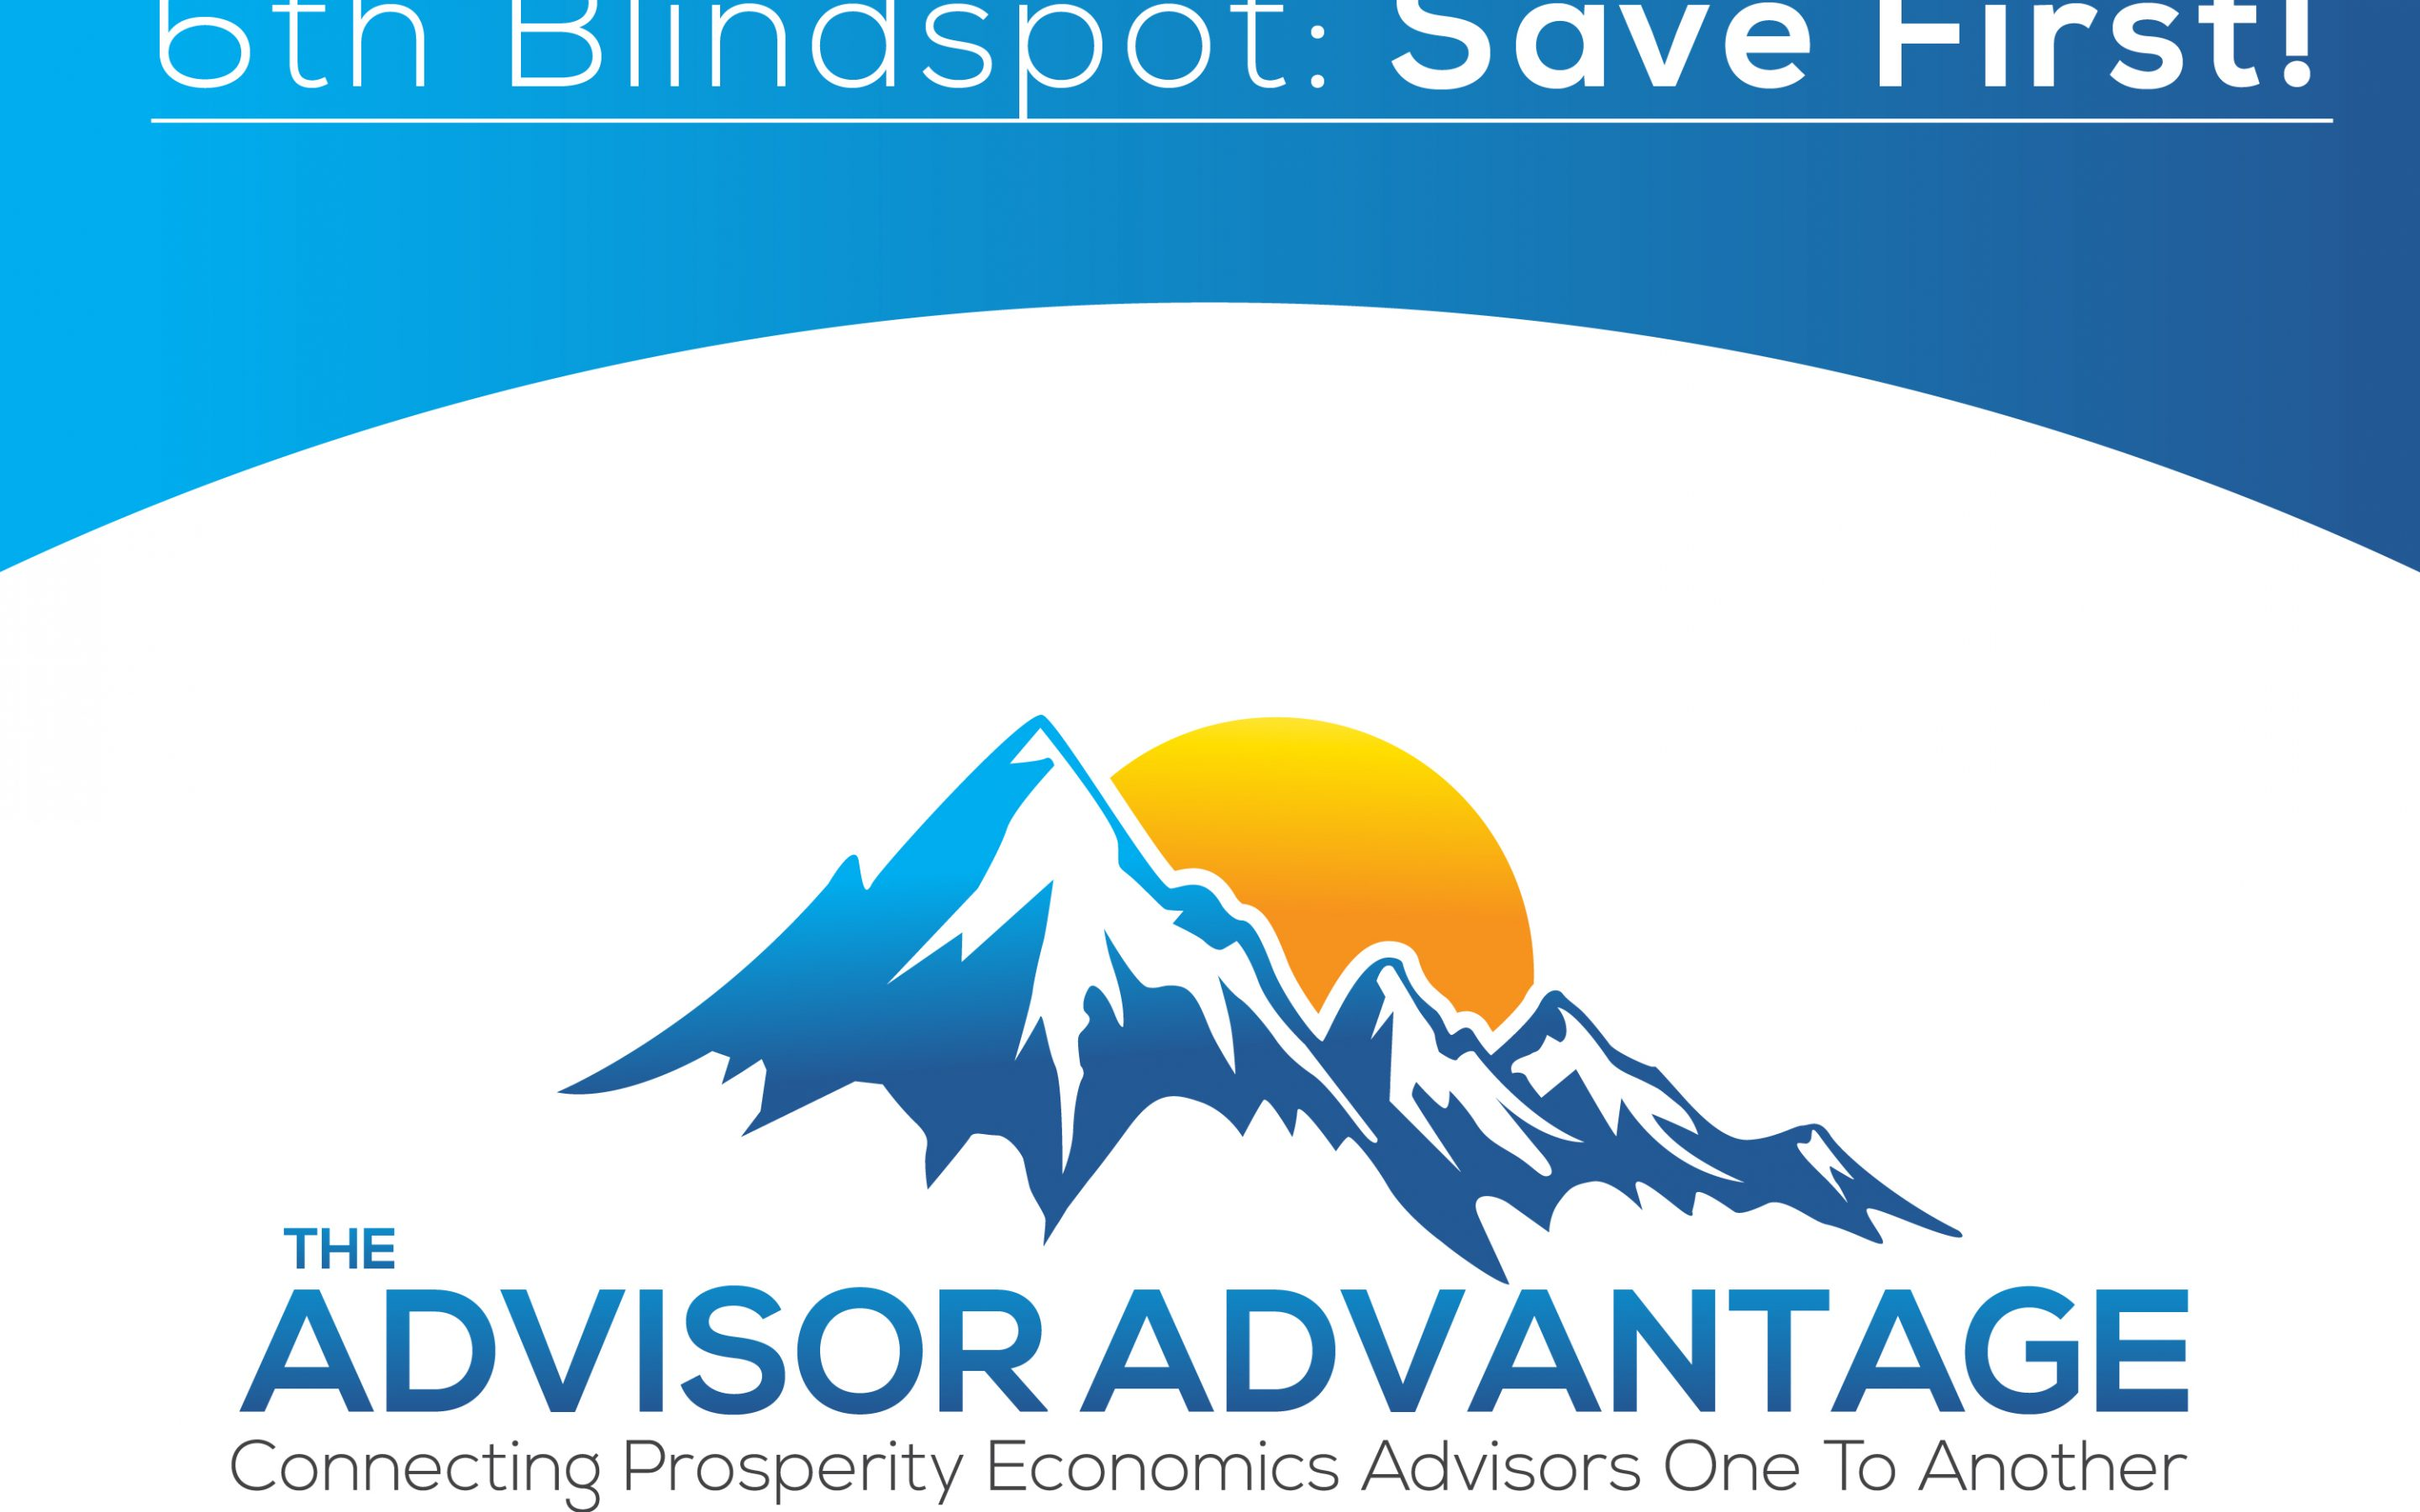 The 6th Blind Spot: Save First! – Episode 112